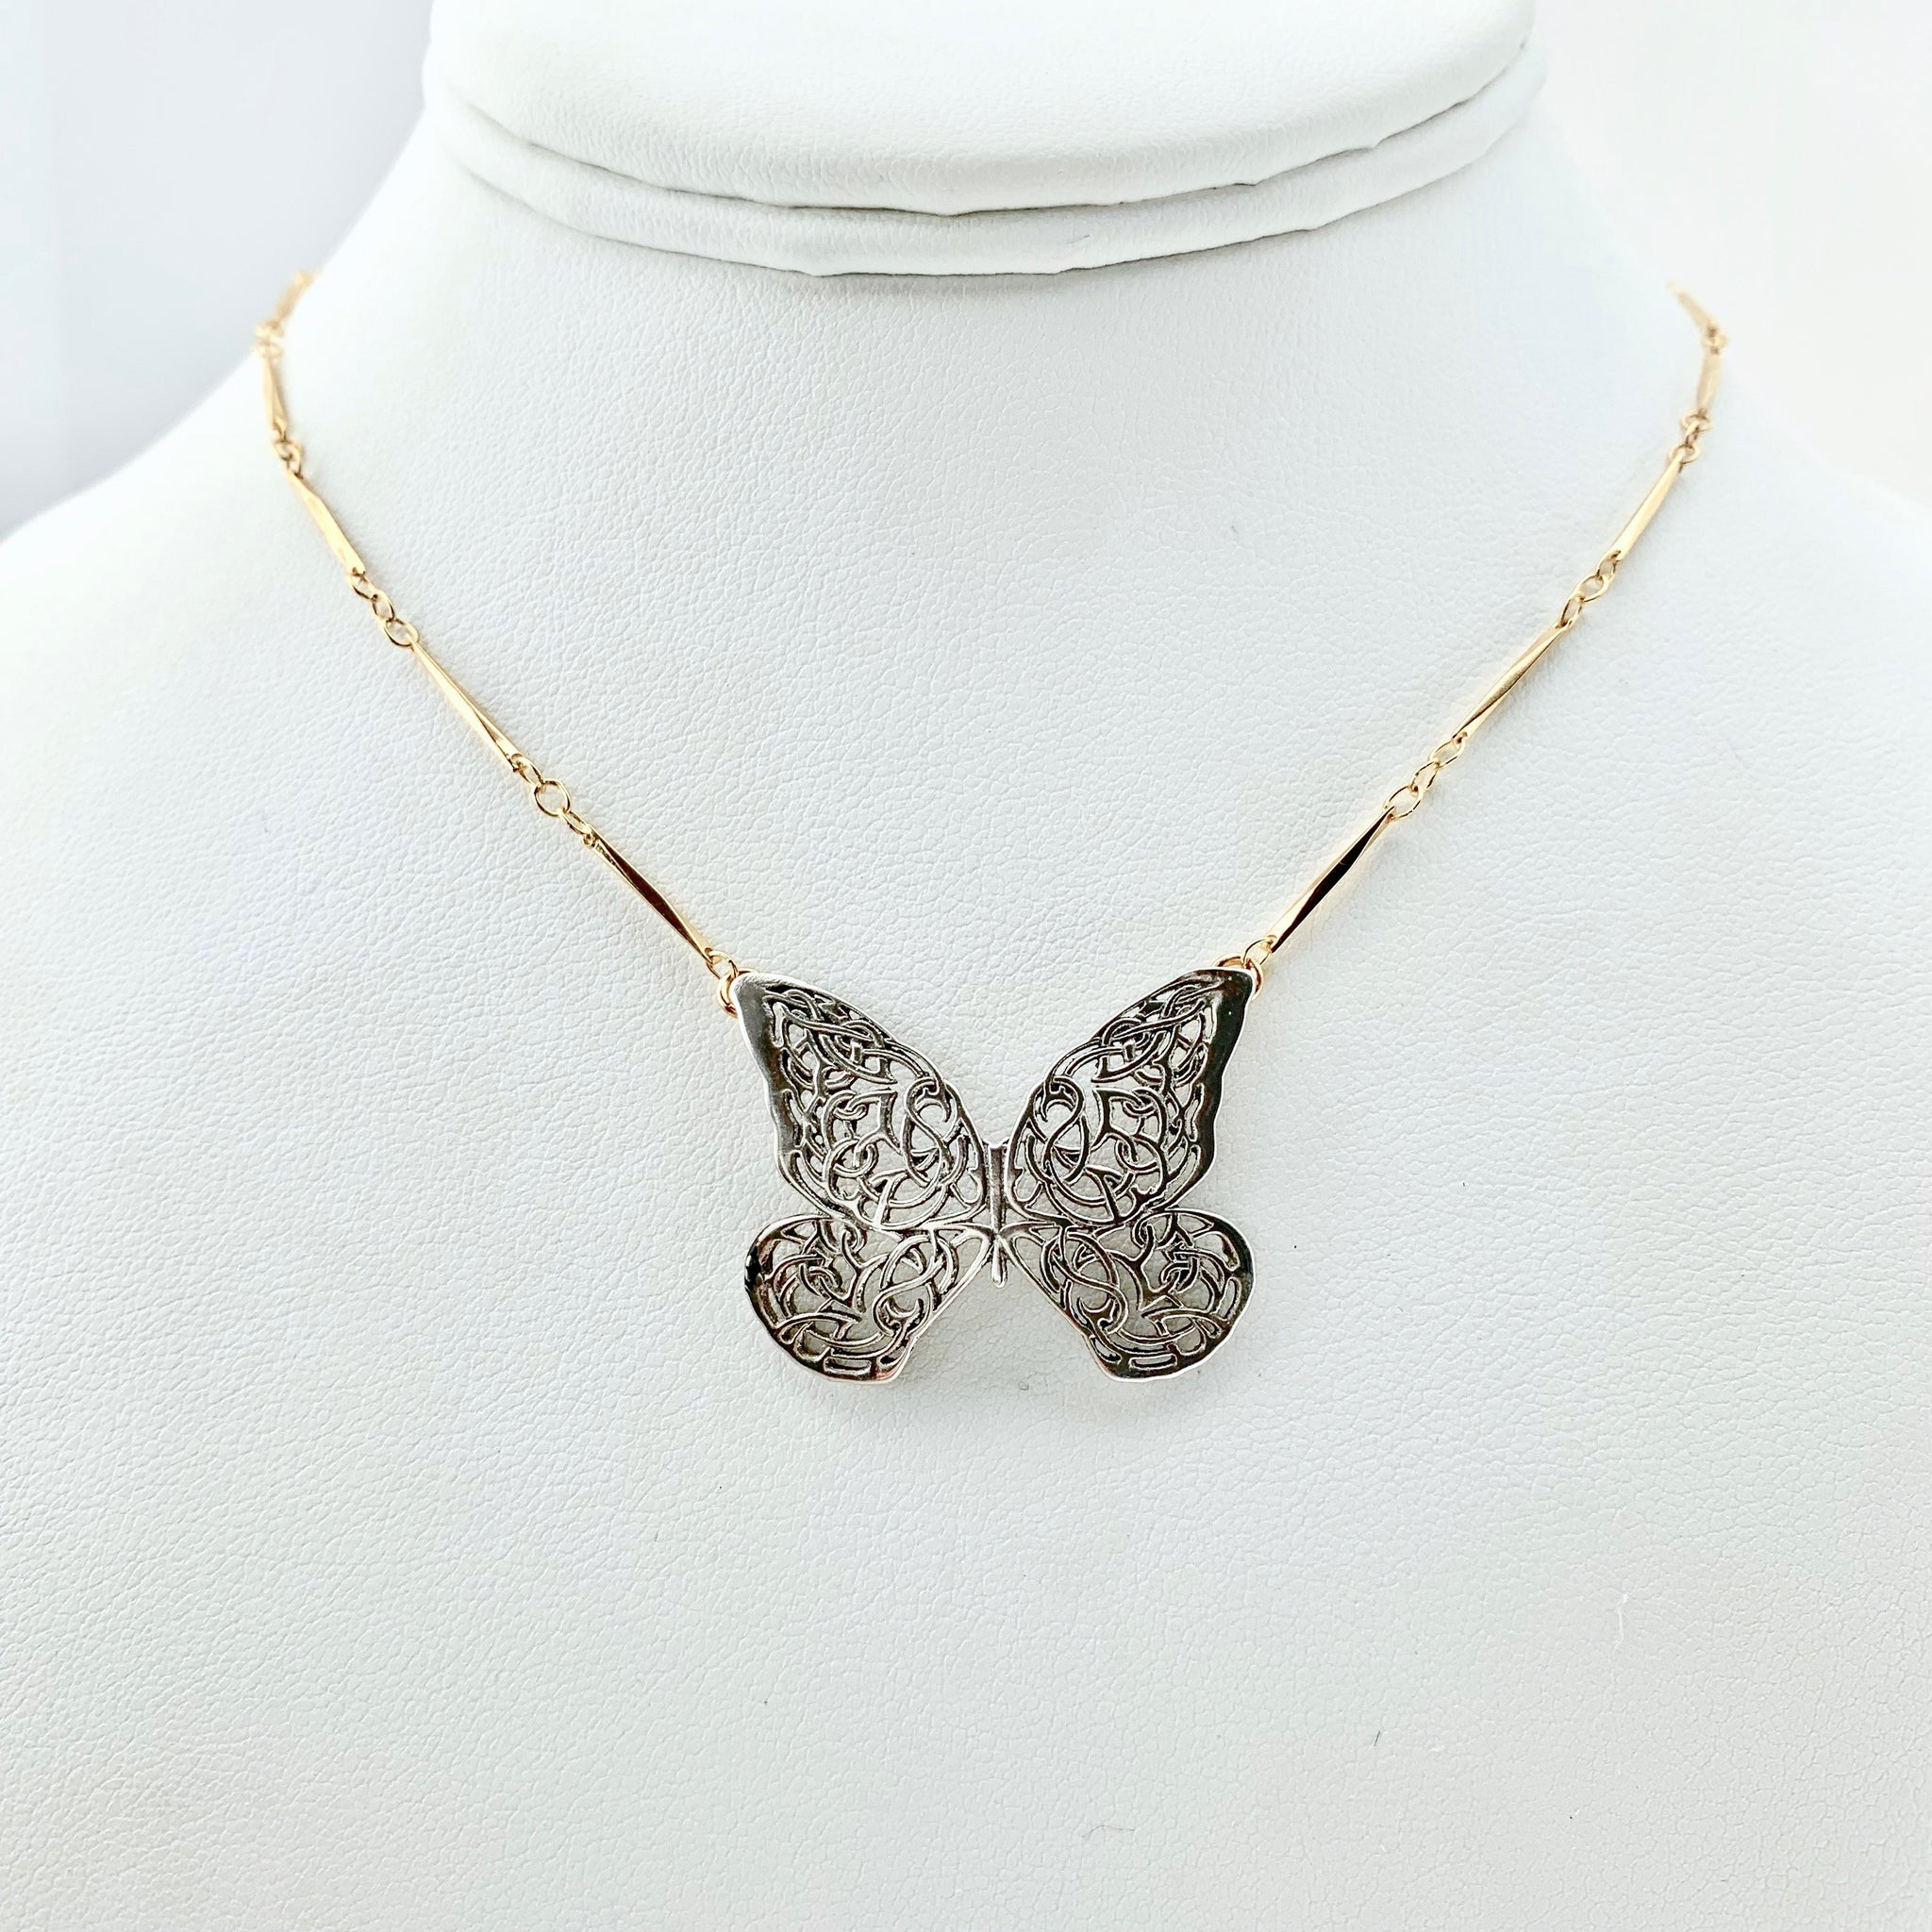 SALE - Celtic Knot Butterfly Necklace